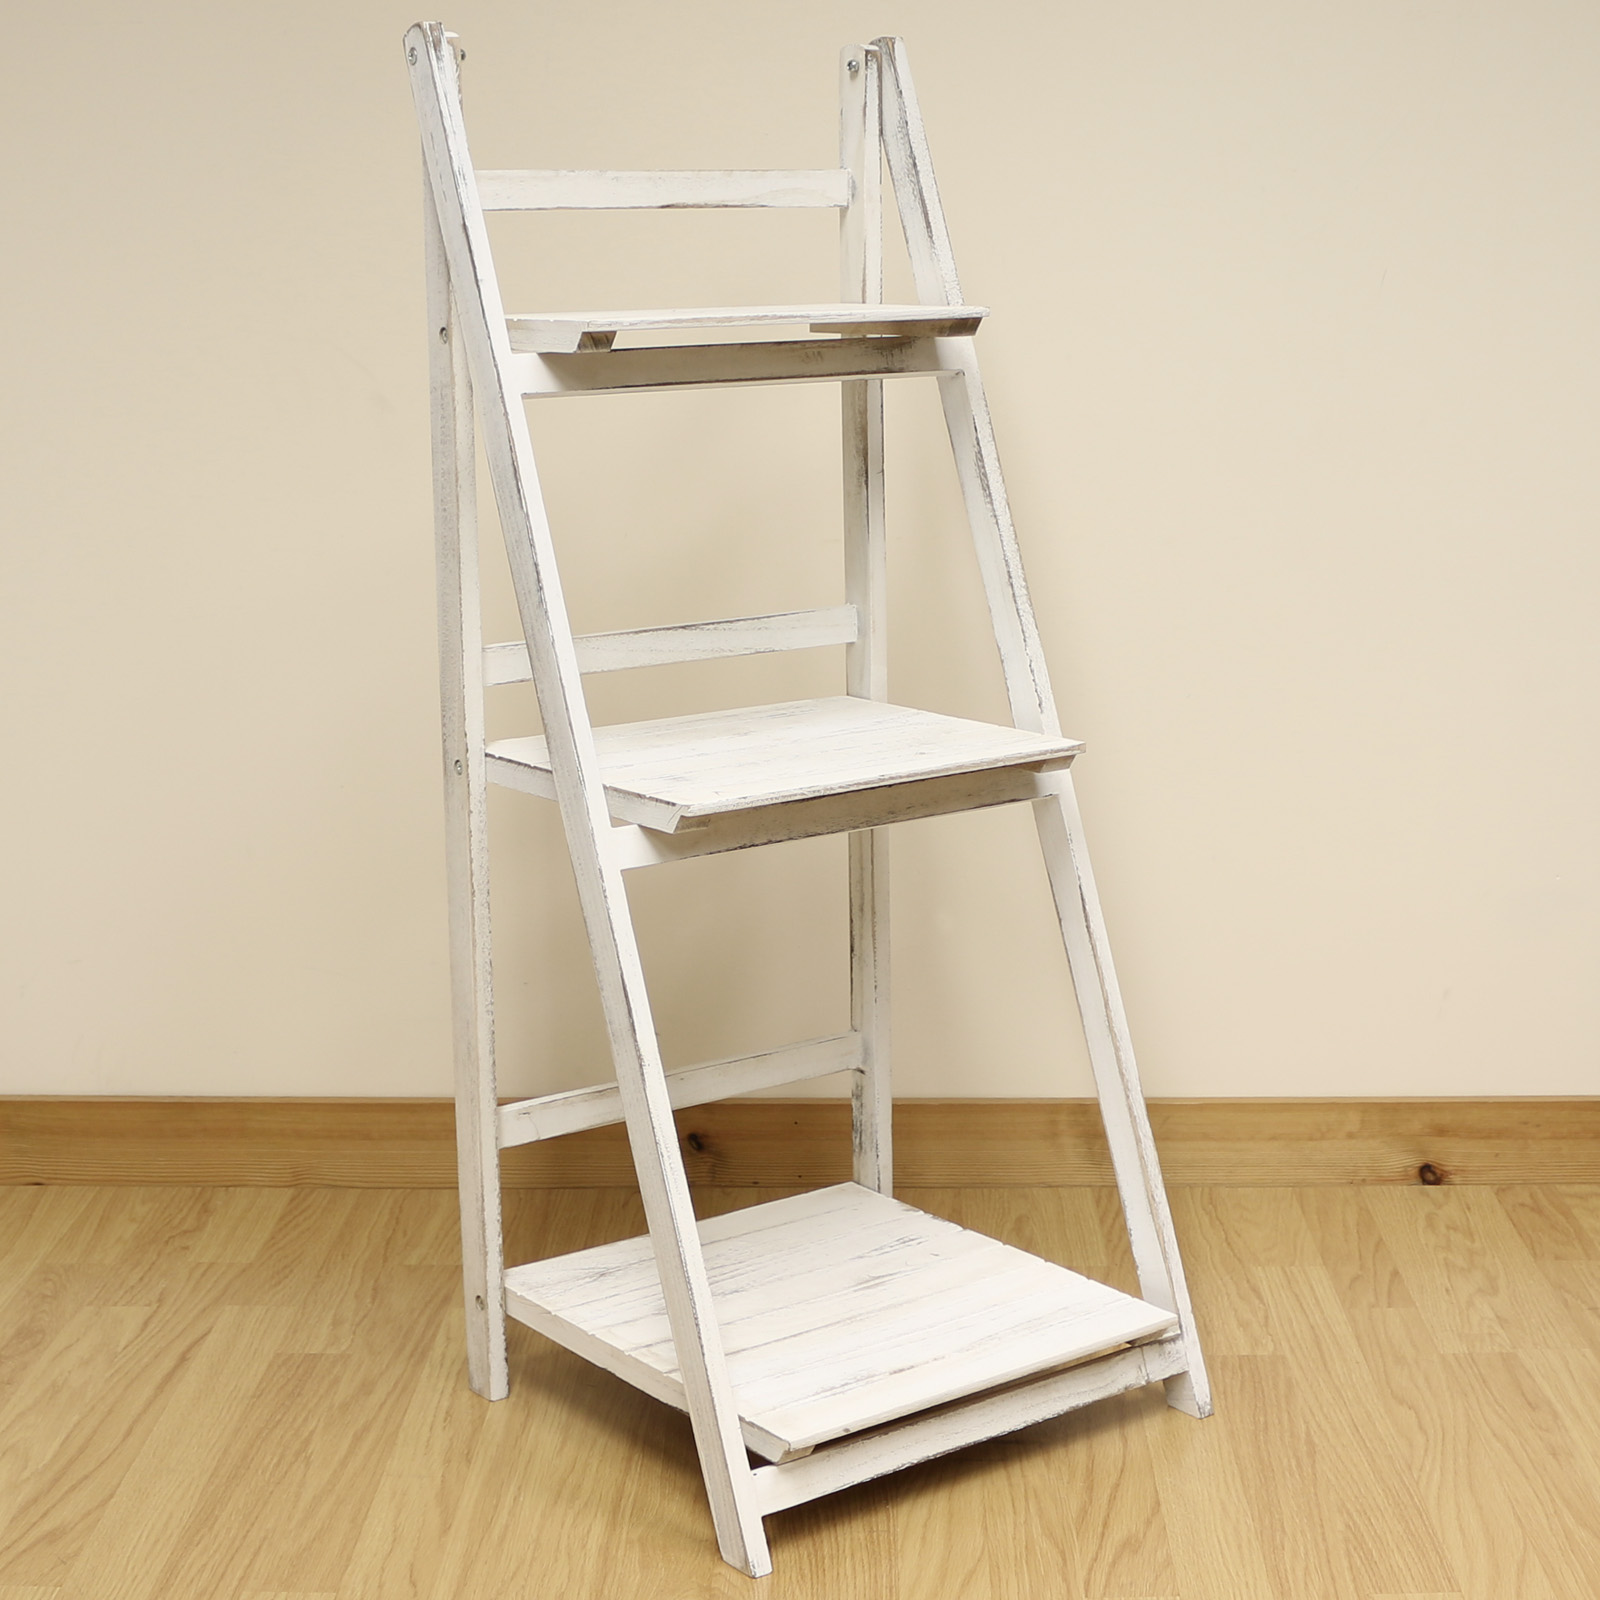 3 tier white wash ladder shelf display unit free standing for Portable book shelves